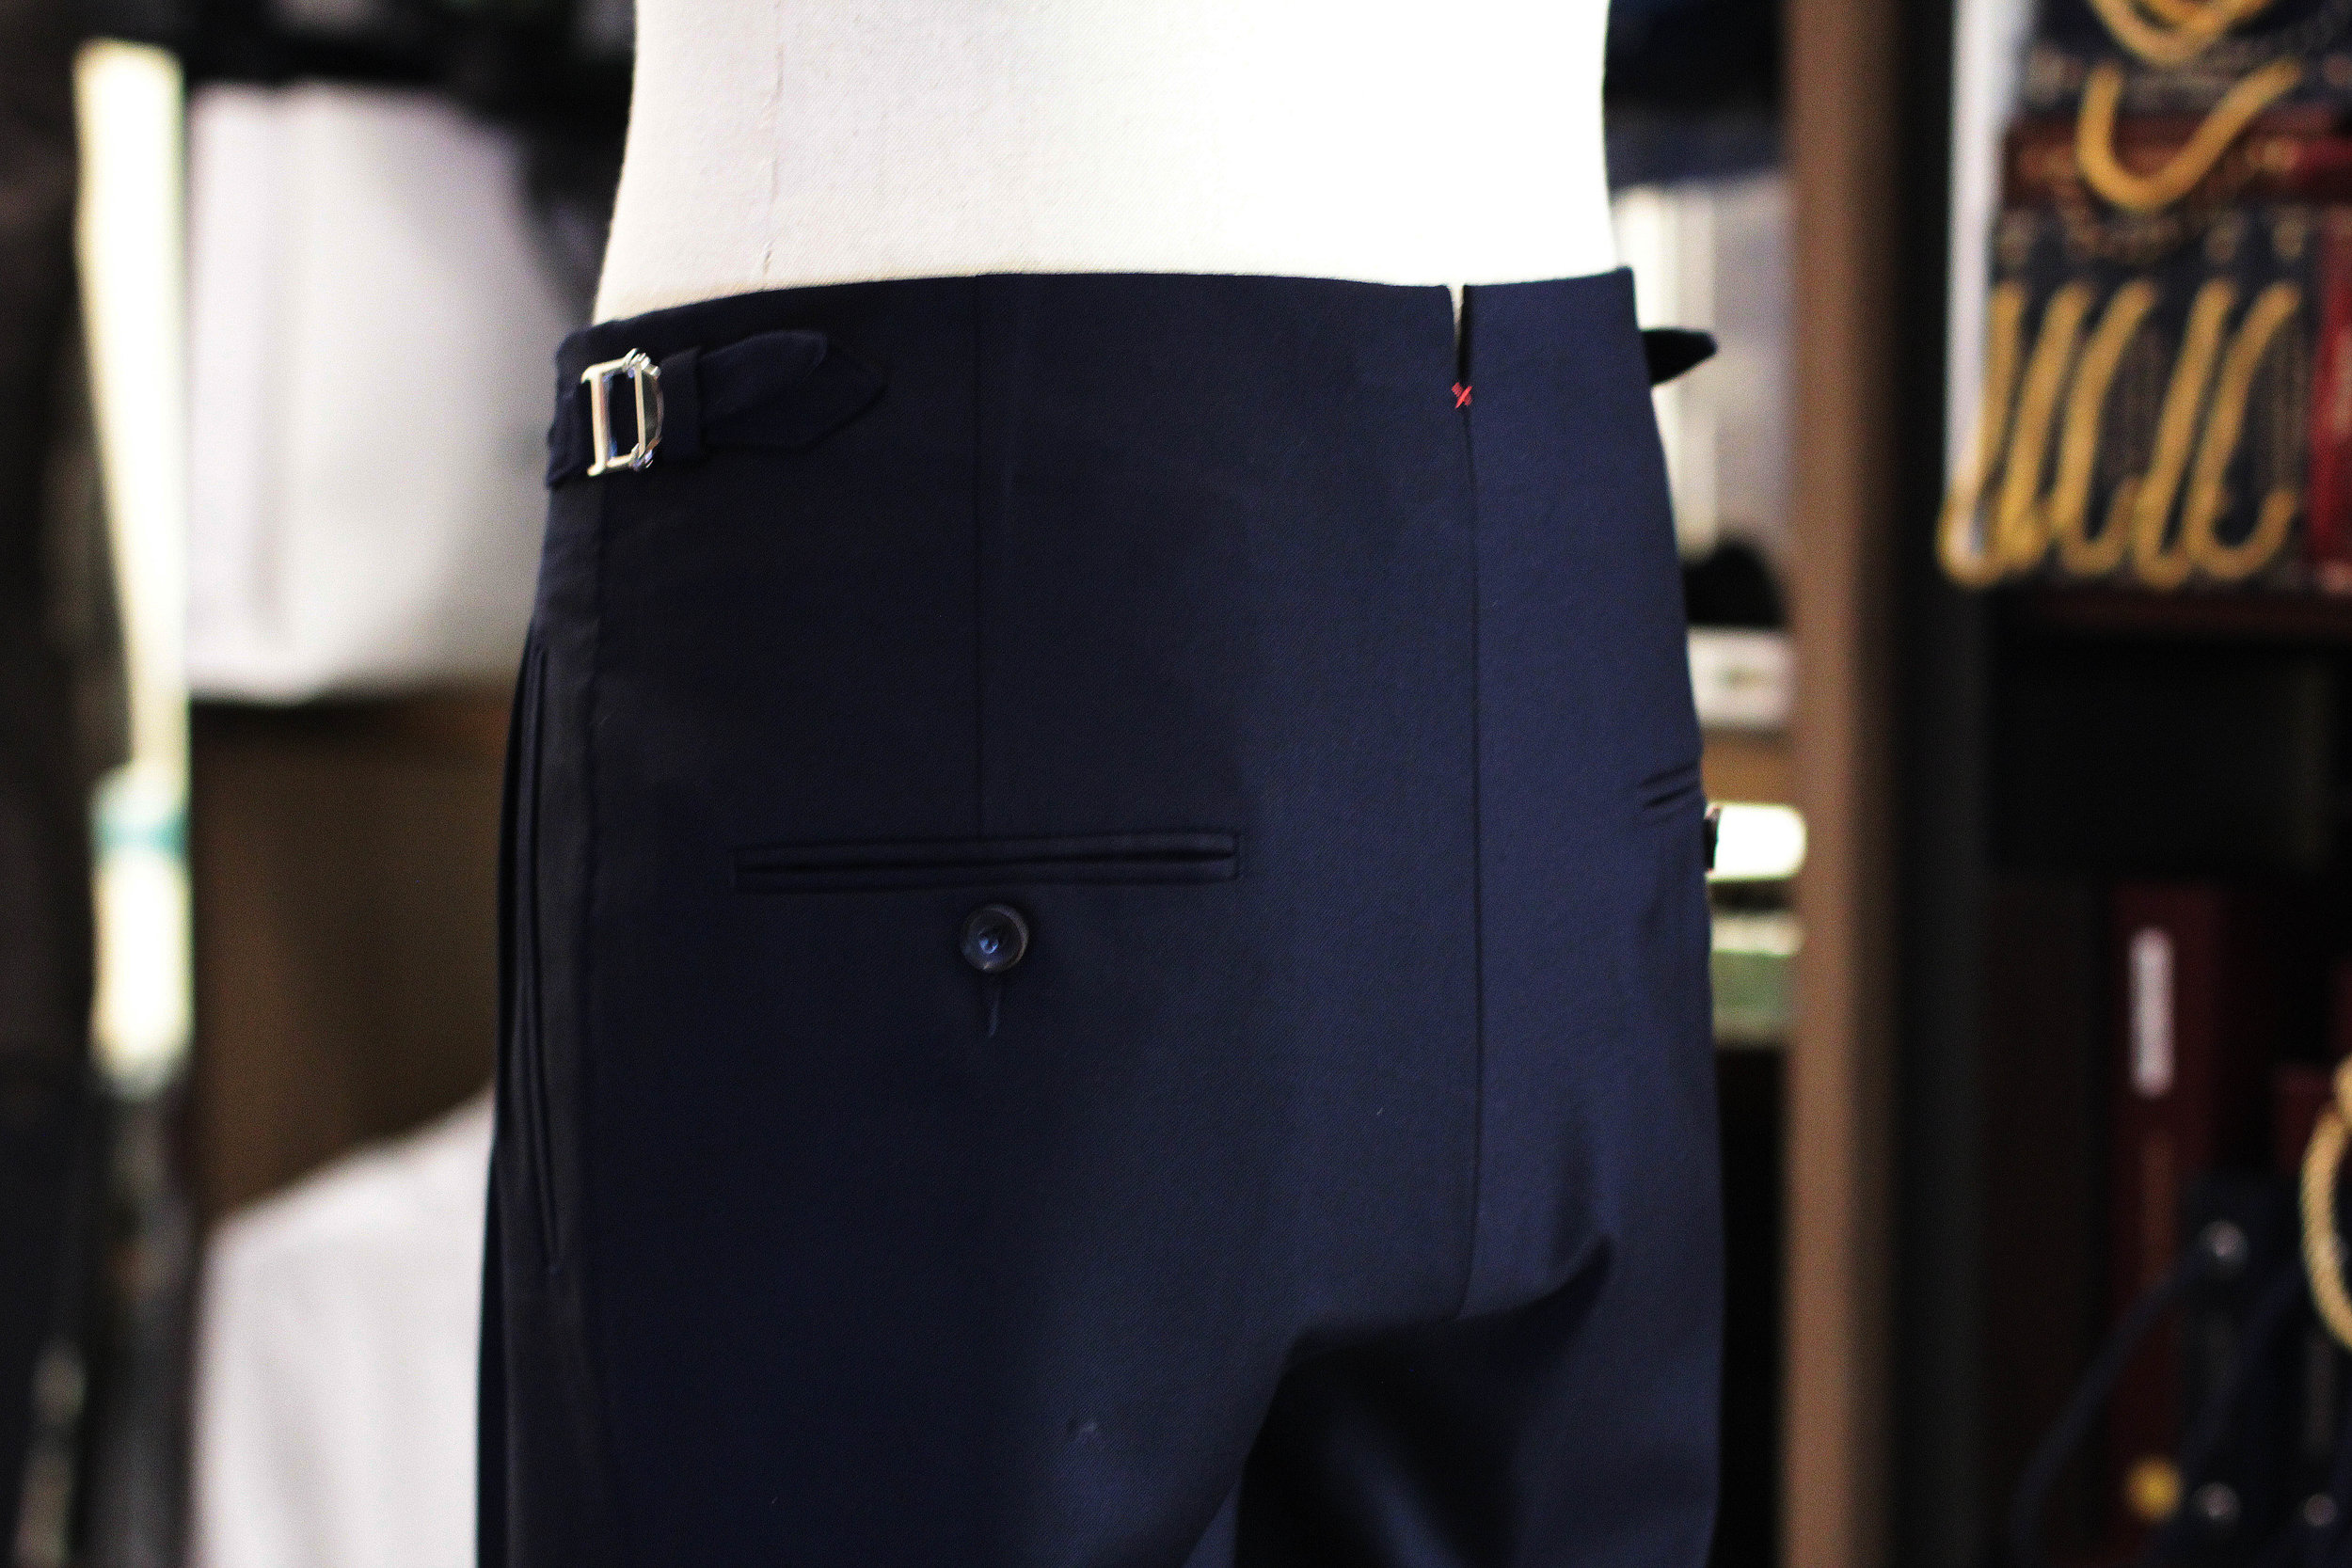 Navy Blue Holland Waistband Pleats Trousers Double Pleated Trousers FILARTE view back silt x red.JPG